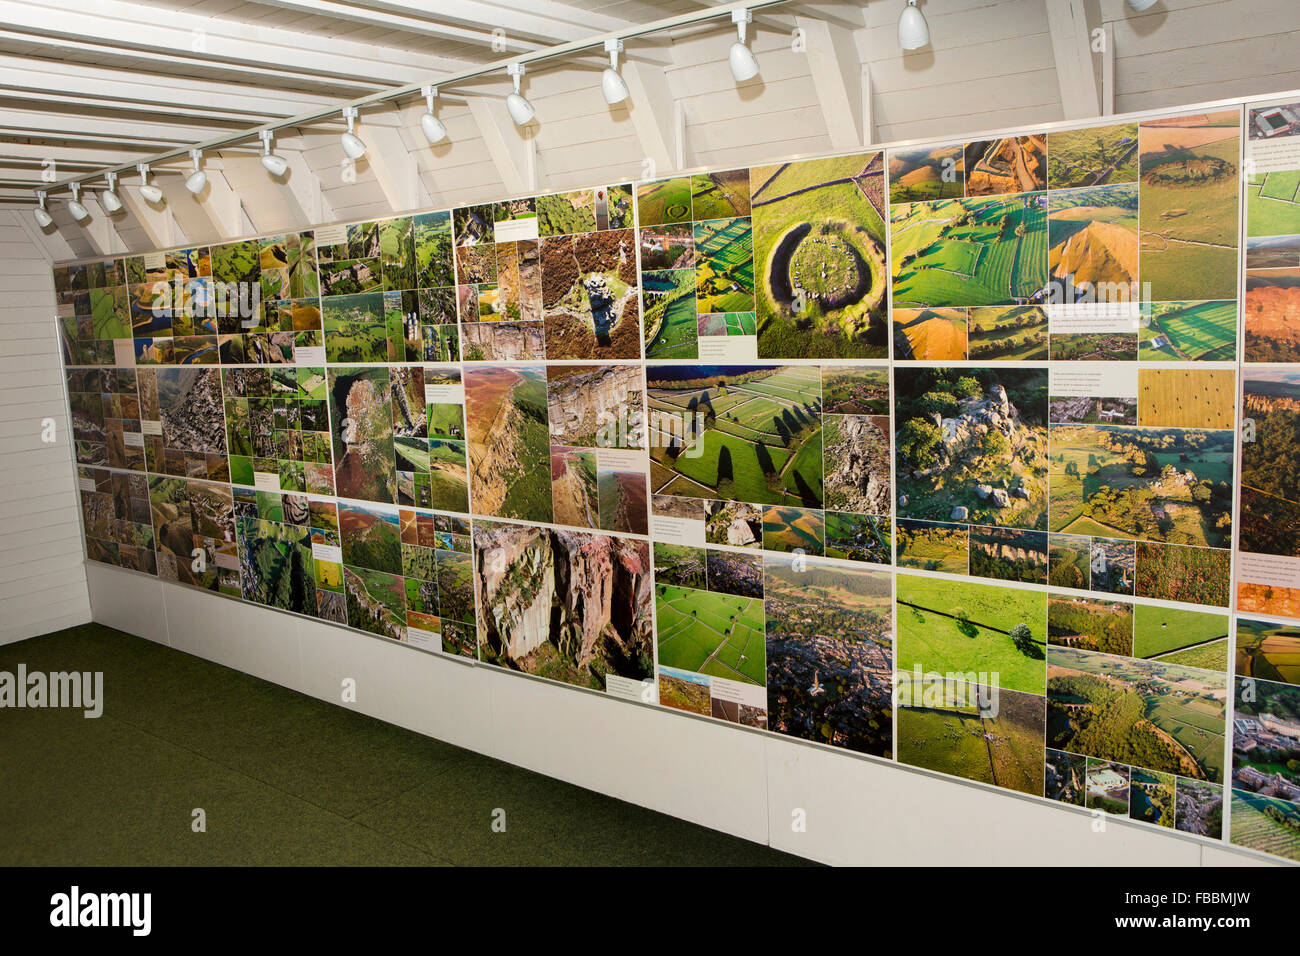 UK, England, Derbyshire, Matlock Bath, Heights of Abraham, Peak District Landscape photography exhibition panel - Stock Image